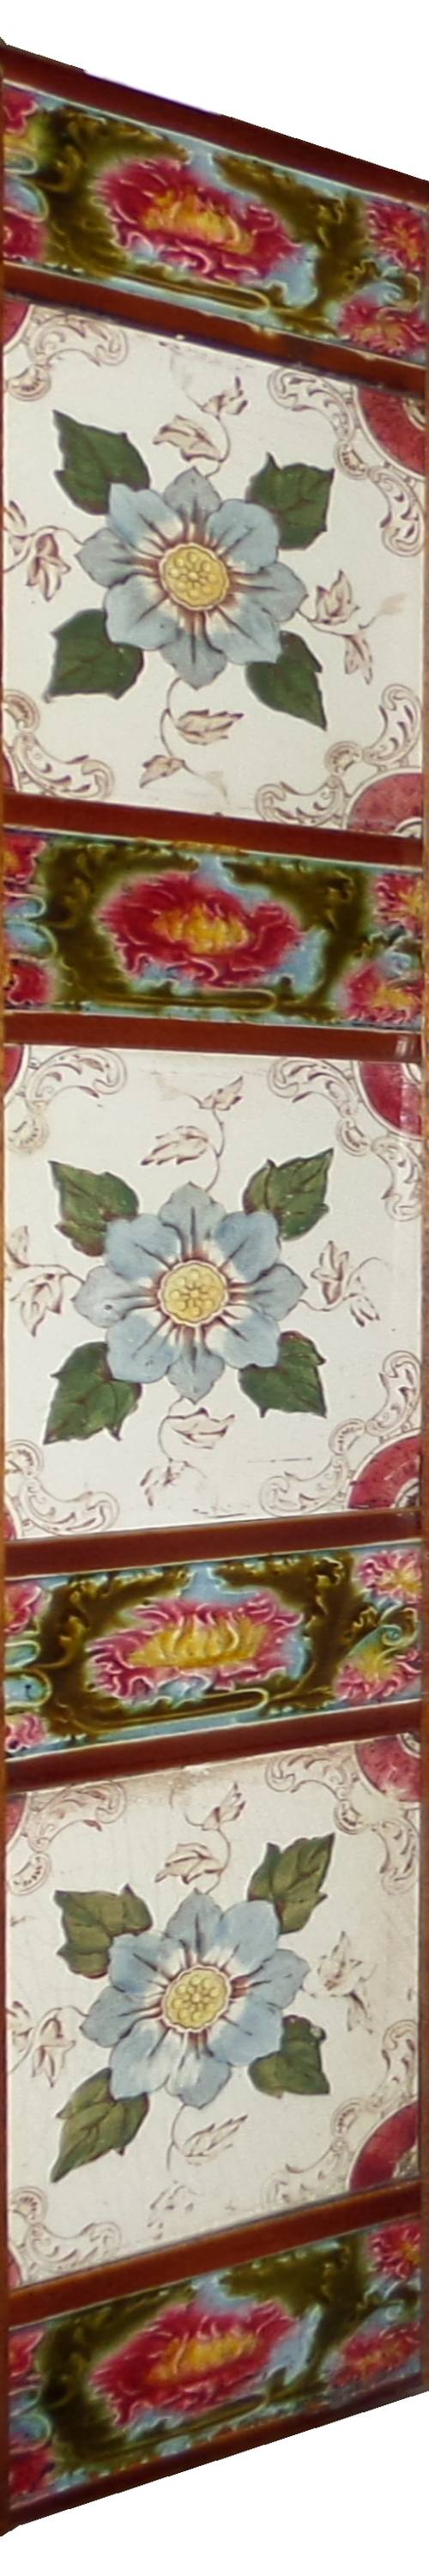 antique tile set